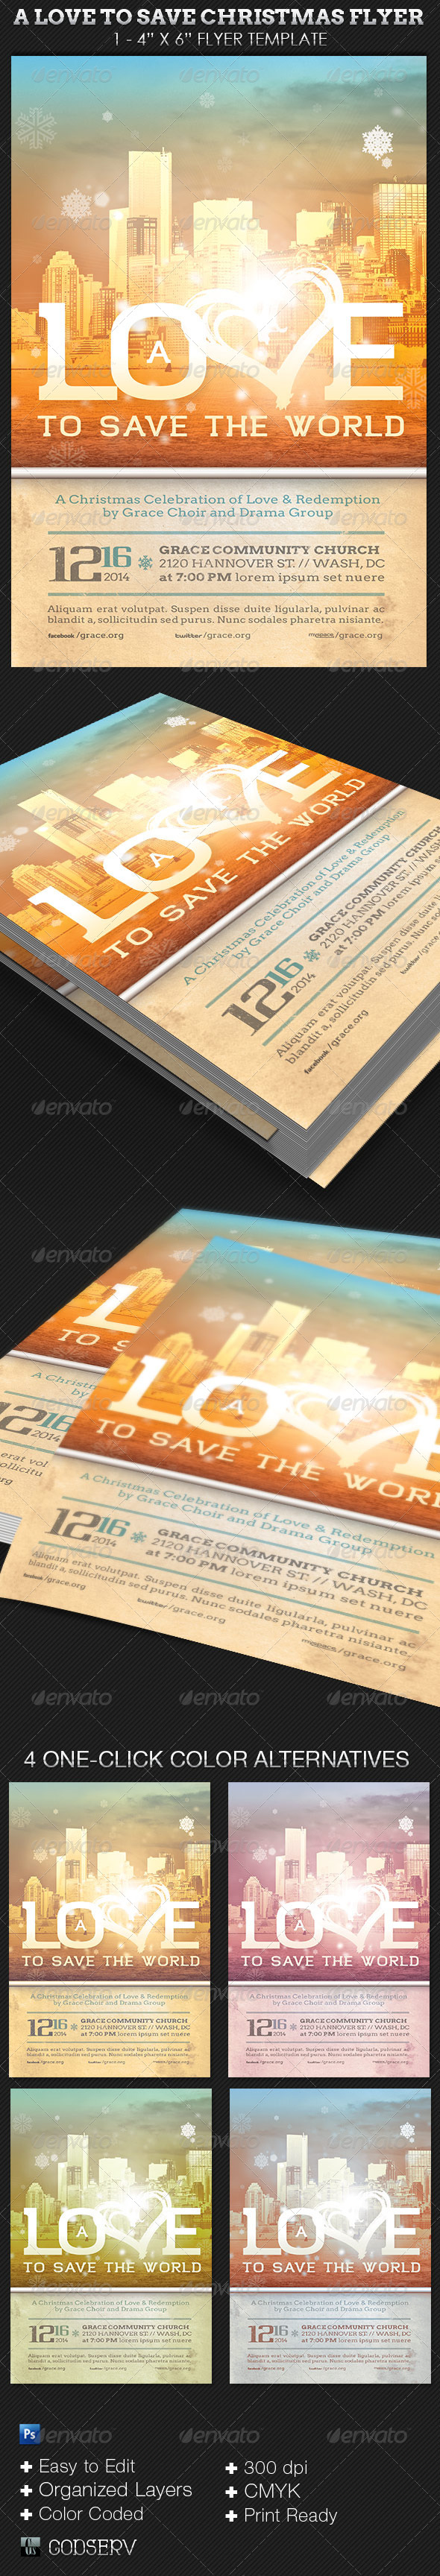 A Love to Save Christmas Flyer Template - Church Flyers